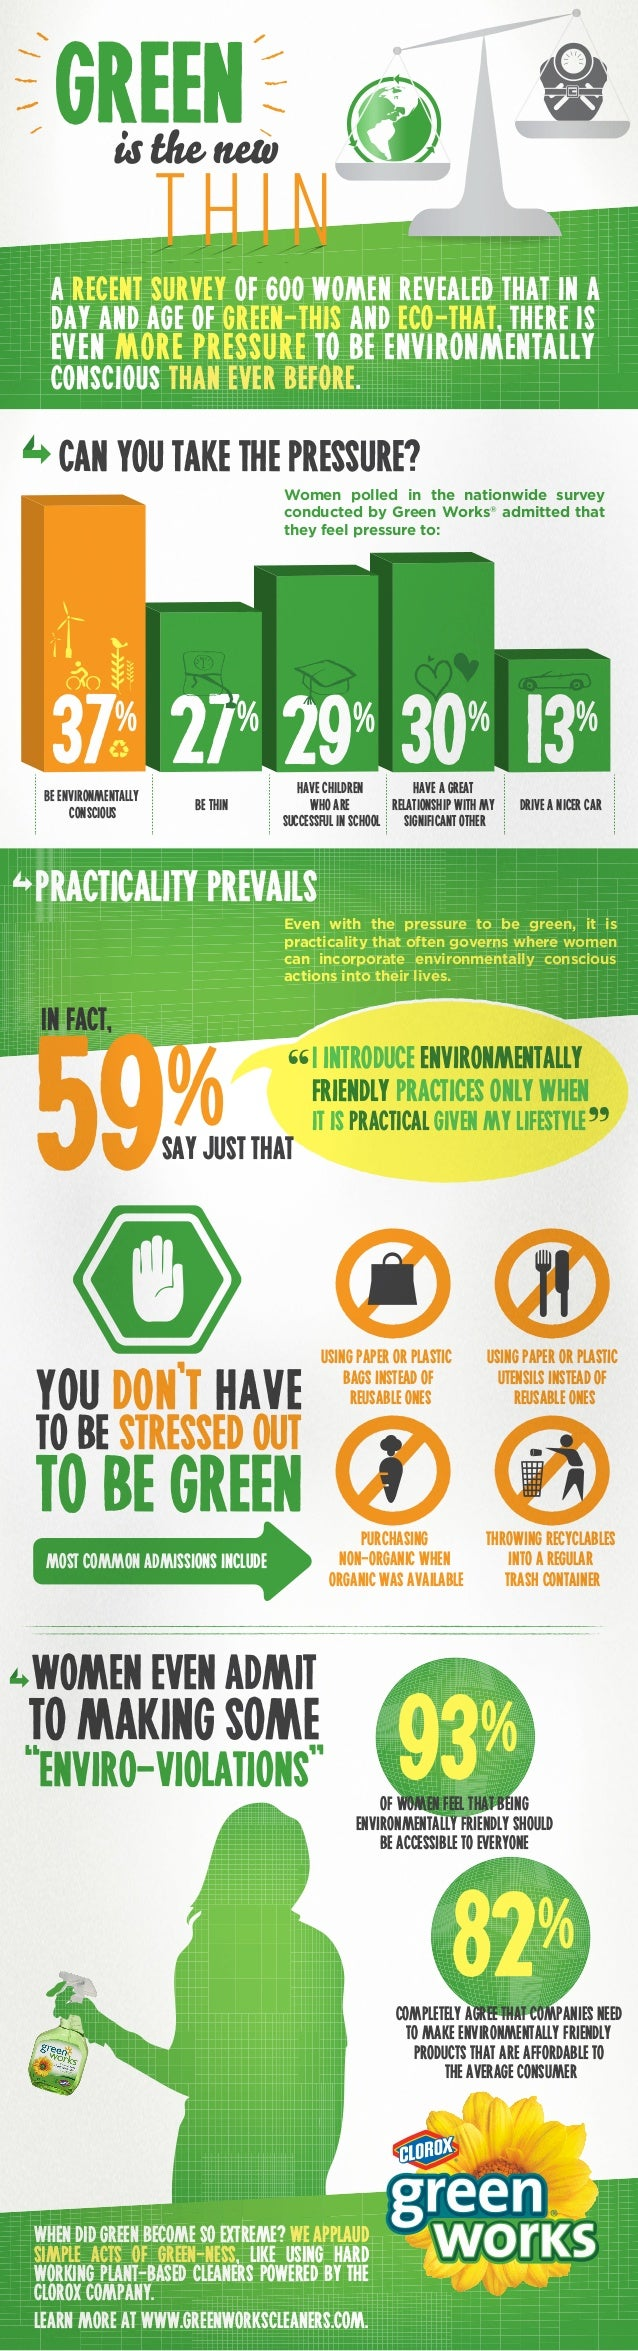 Clorox Green Works Infographic: Green is the new Thin